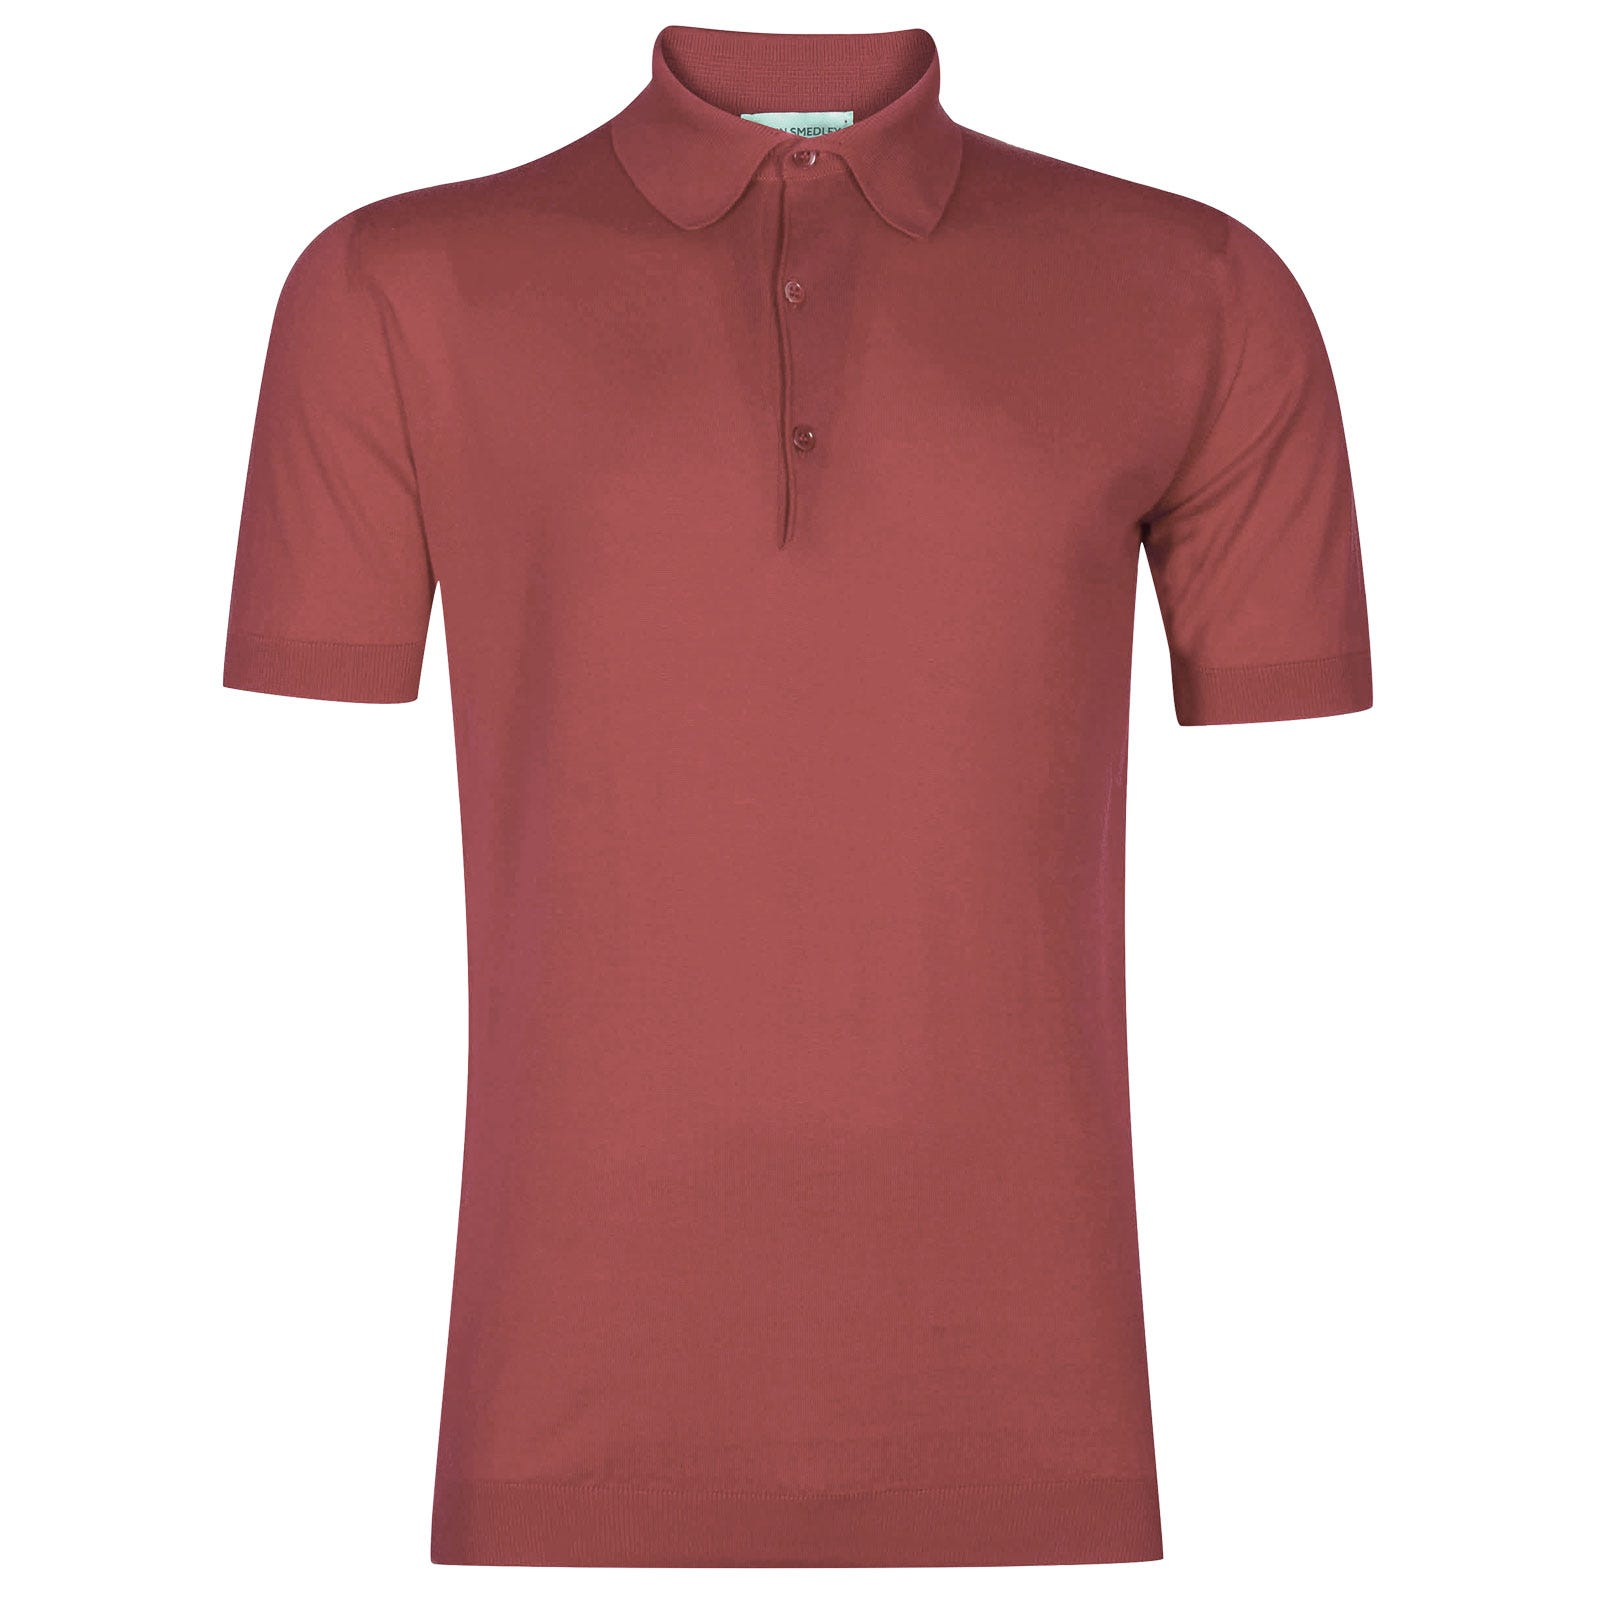 John Smedley adrian Sea Island Cotton Shirt in Stanton Pink-L